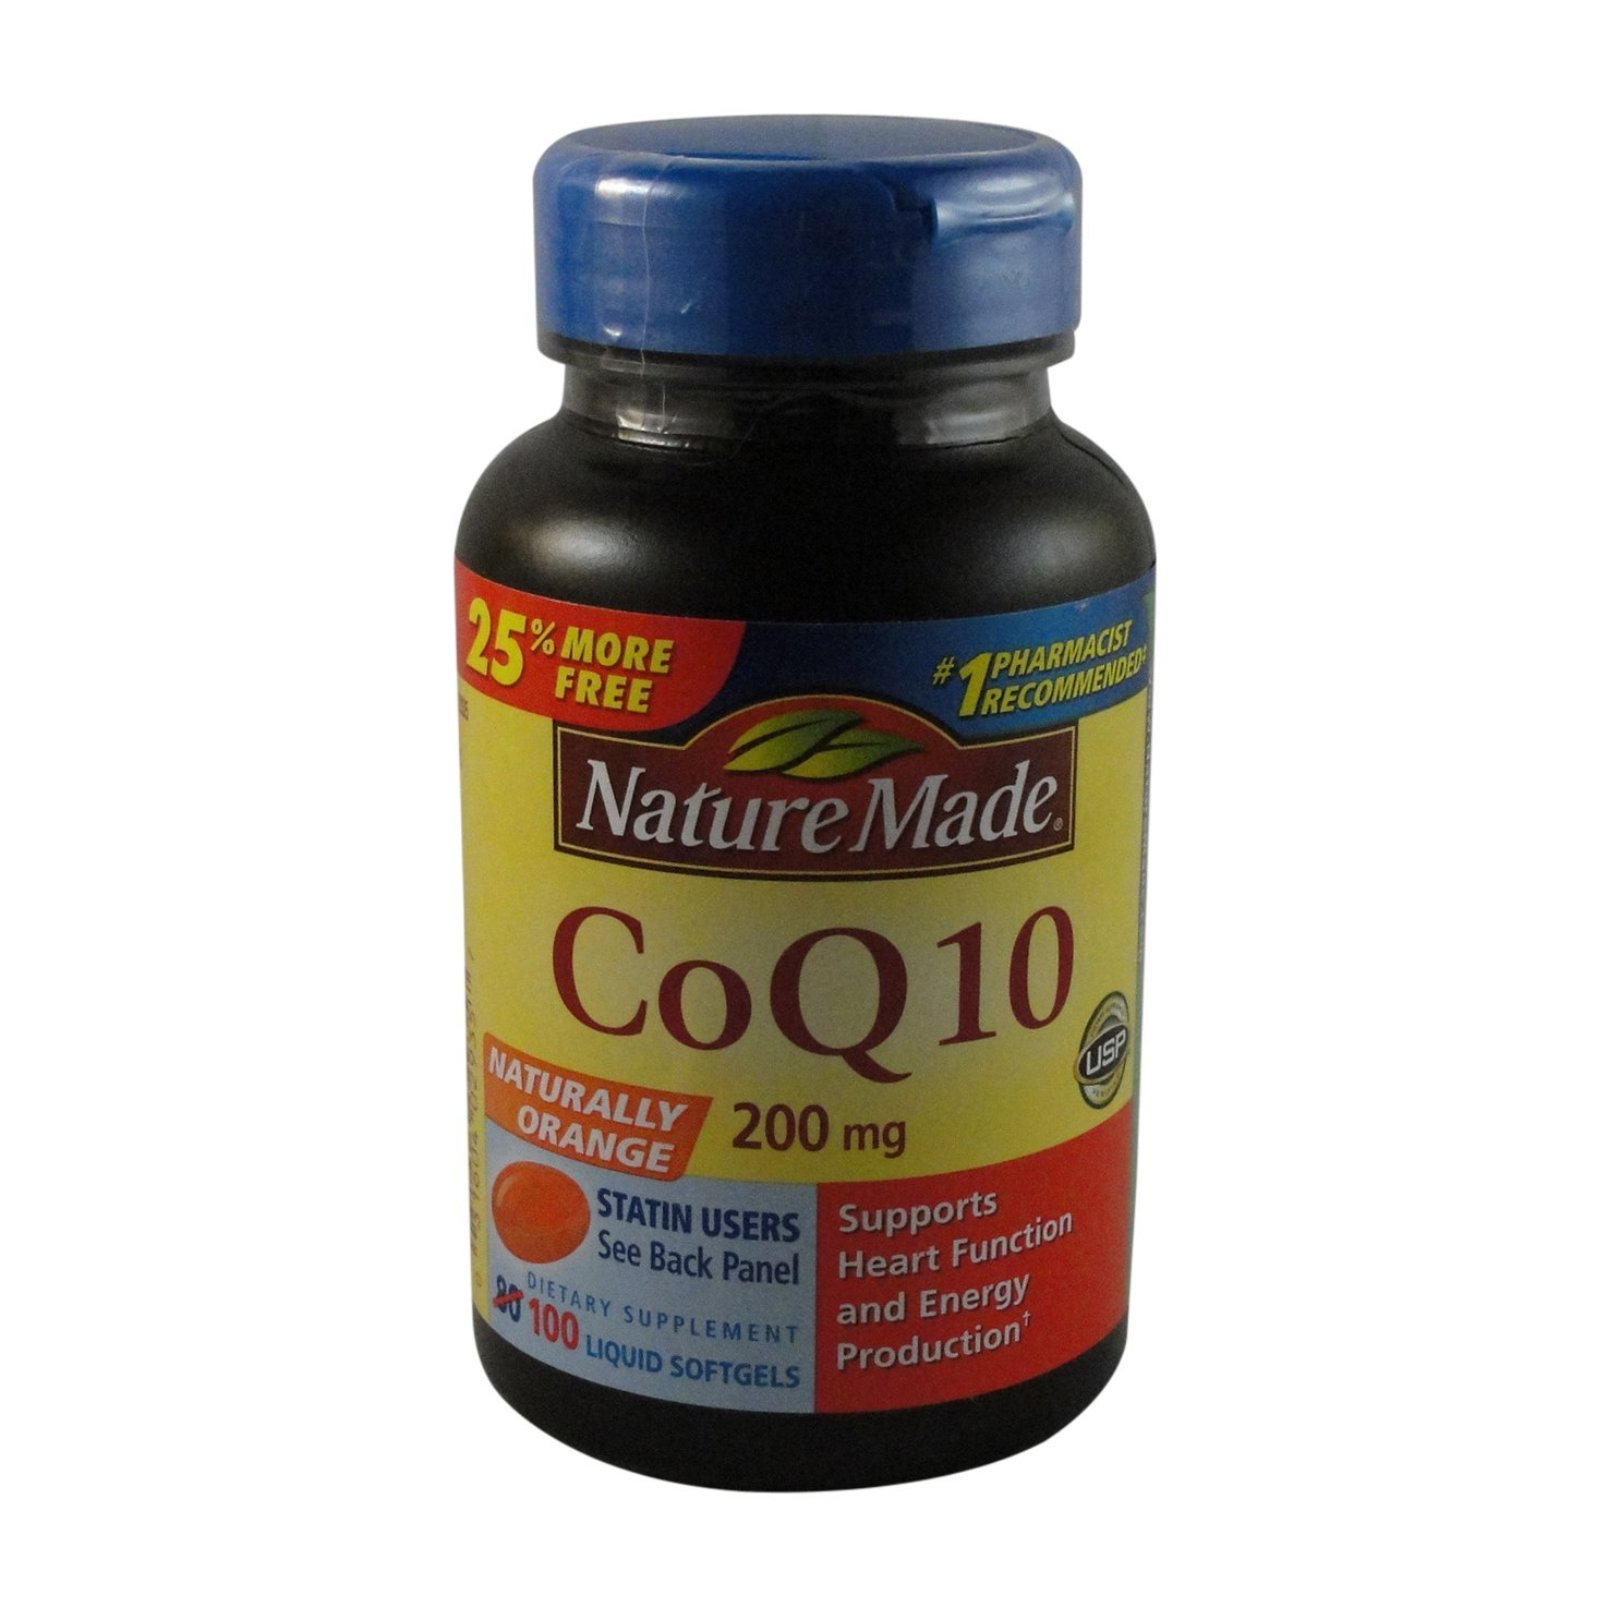 Nature Made Coq10 200 Mg Value Size 100 ct.